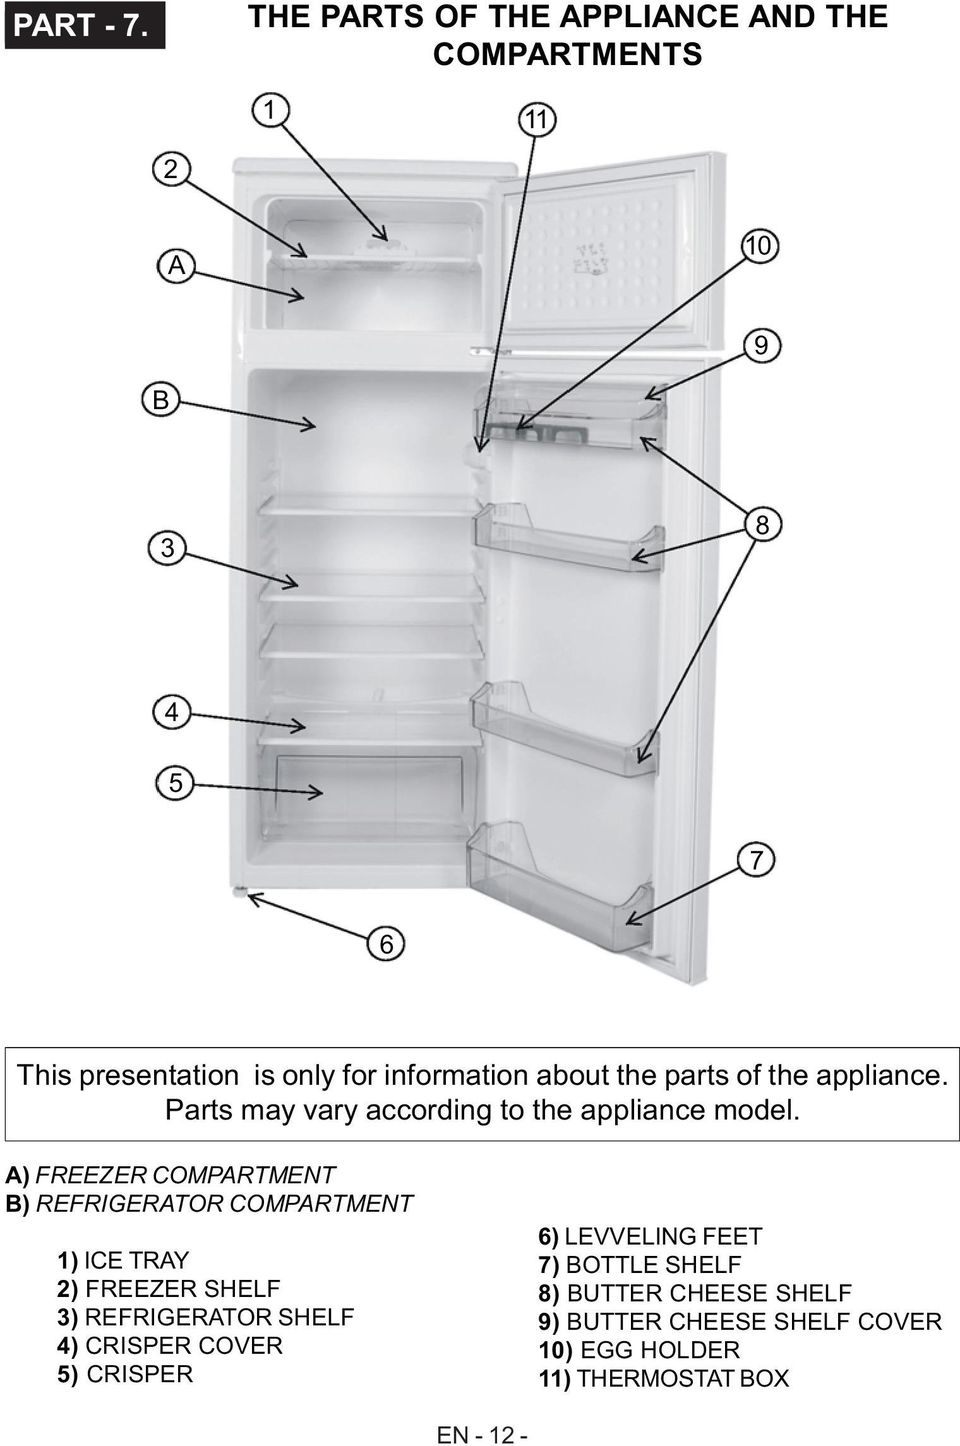 about the parts of the appliance. Parts may vary according to the appliance model.